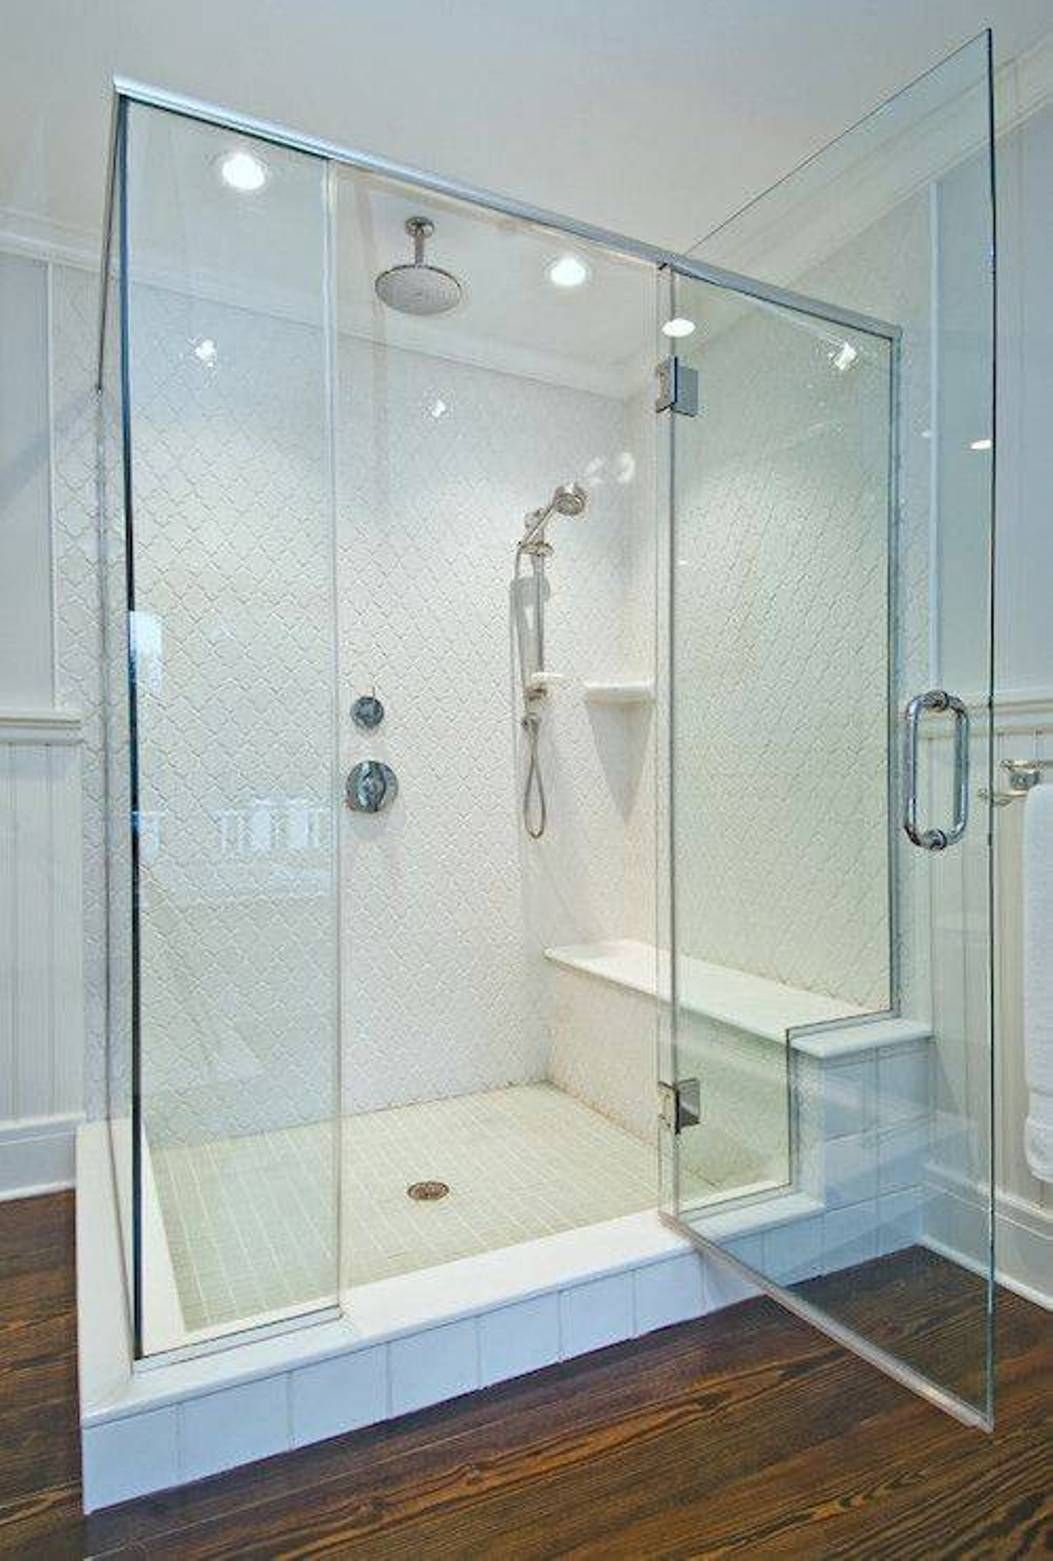 walk in shower w/ glass doors and seats | Walk In Shower | Pinterest ...